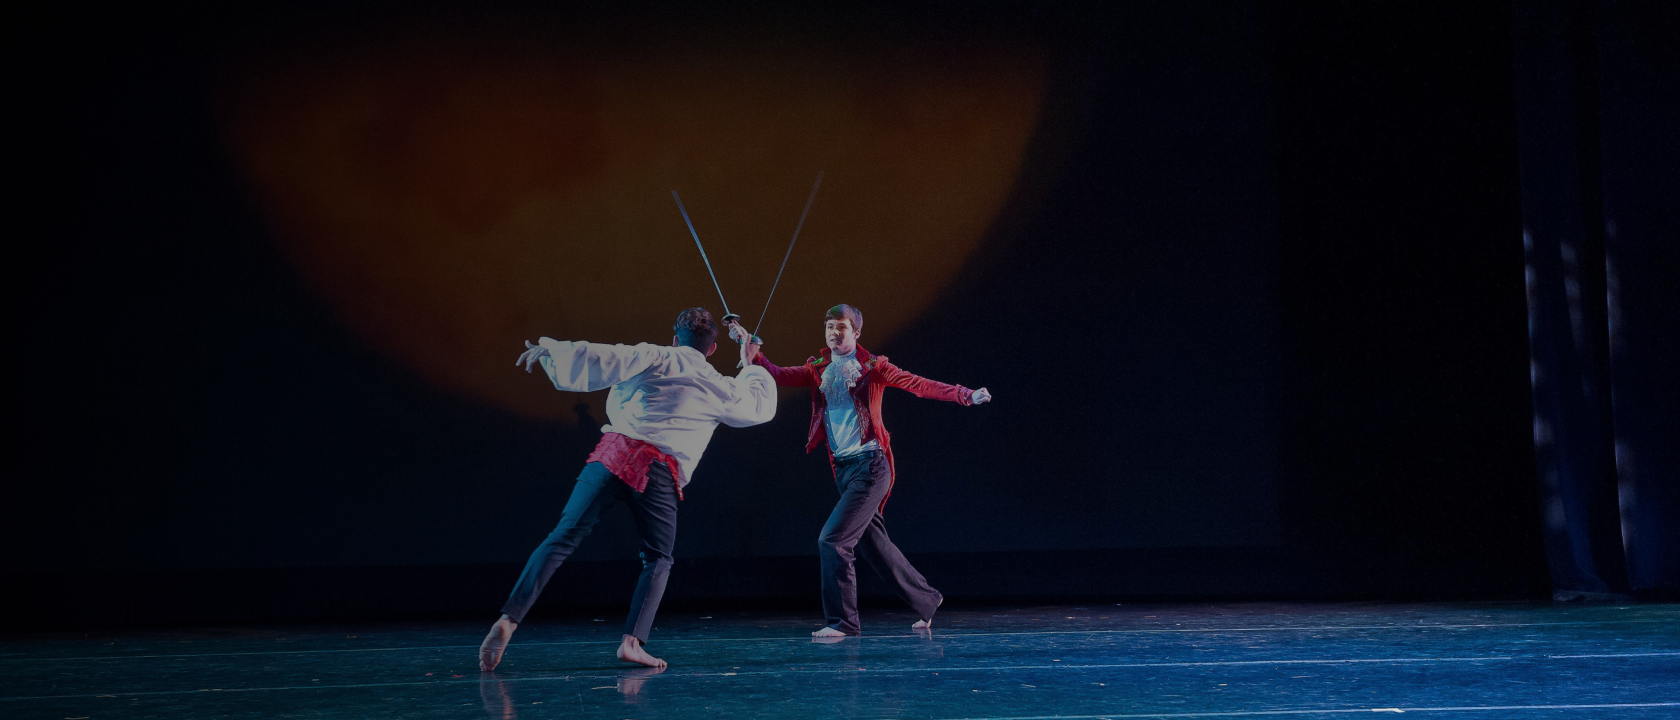 Two students sword fighting on stage